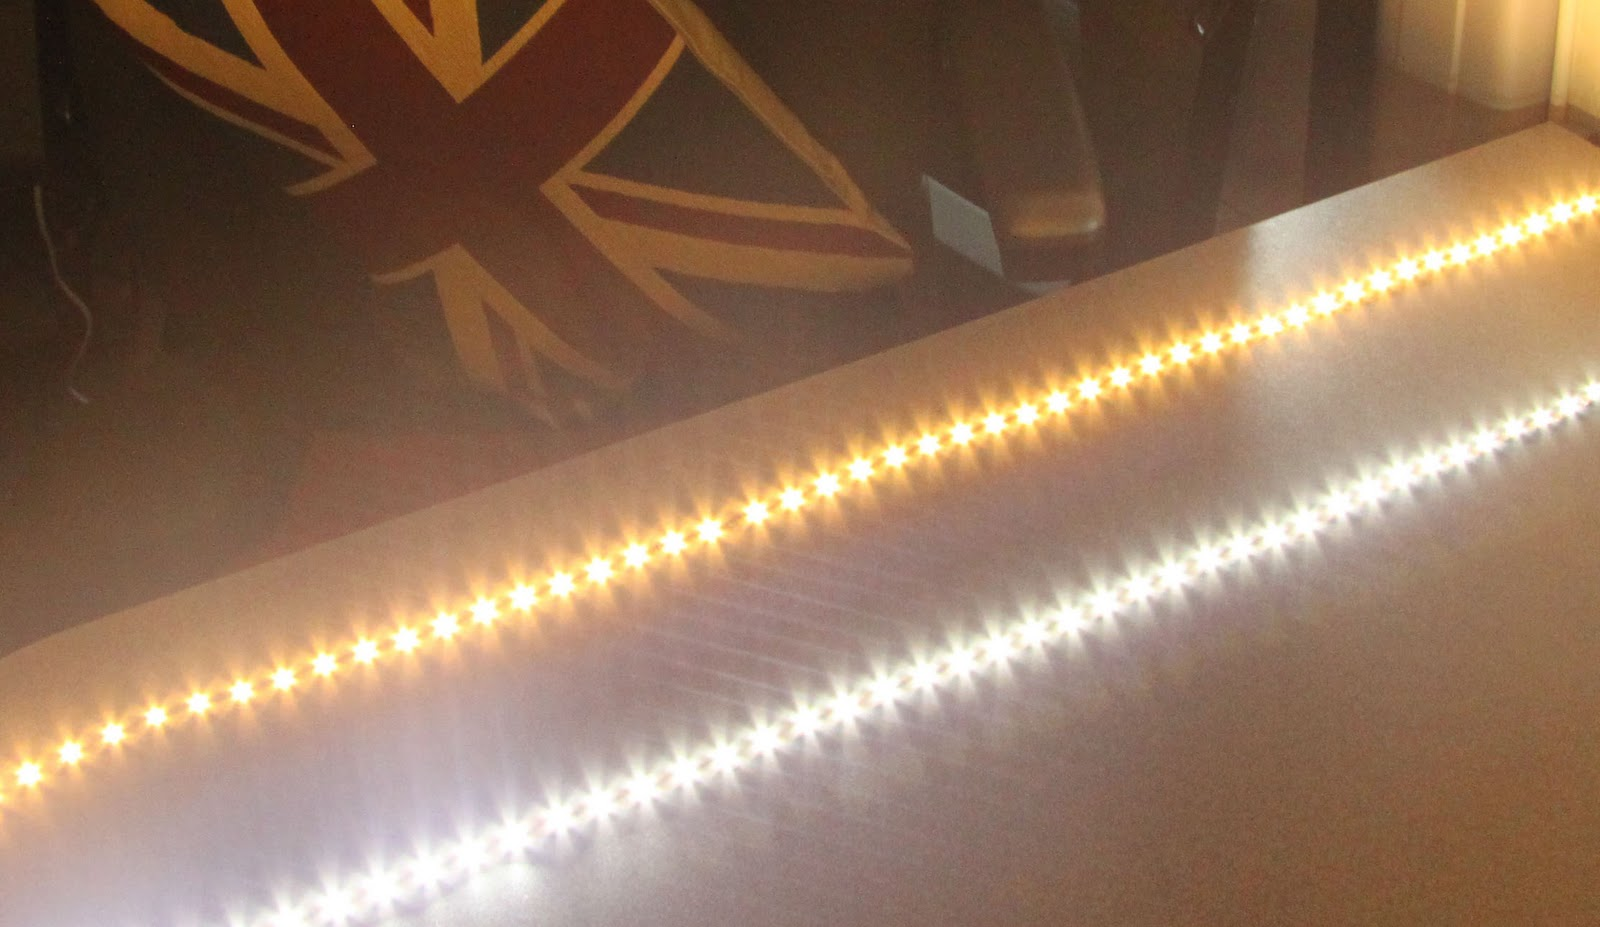 Motorhome adhesive led lighting strips europe by camper the picture to the left shows two different led strips its actually pretty hard to photograph them they are so bright the strip on the left is a warm aloadofball Gallery